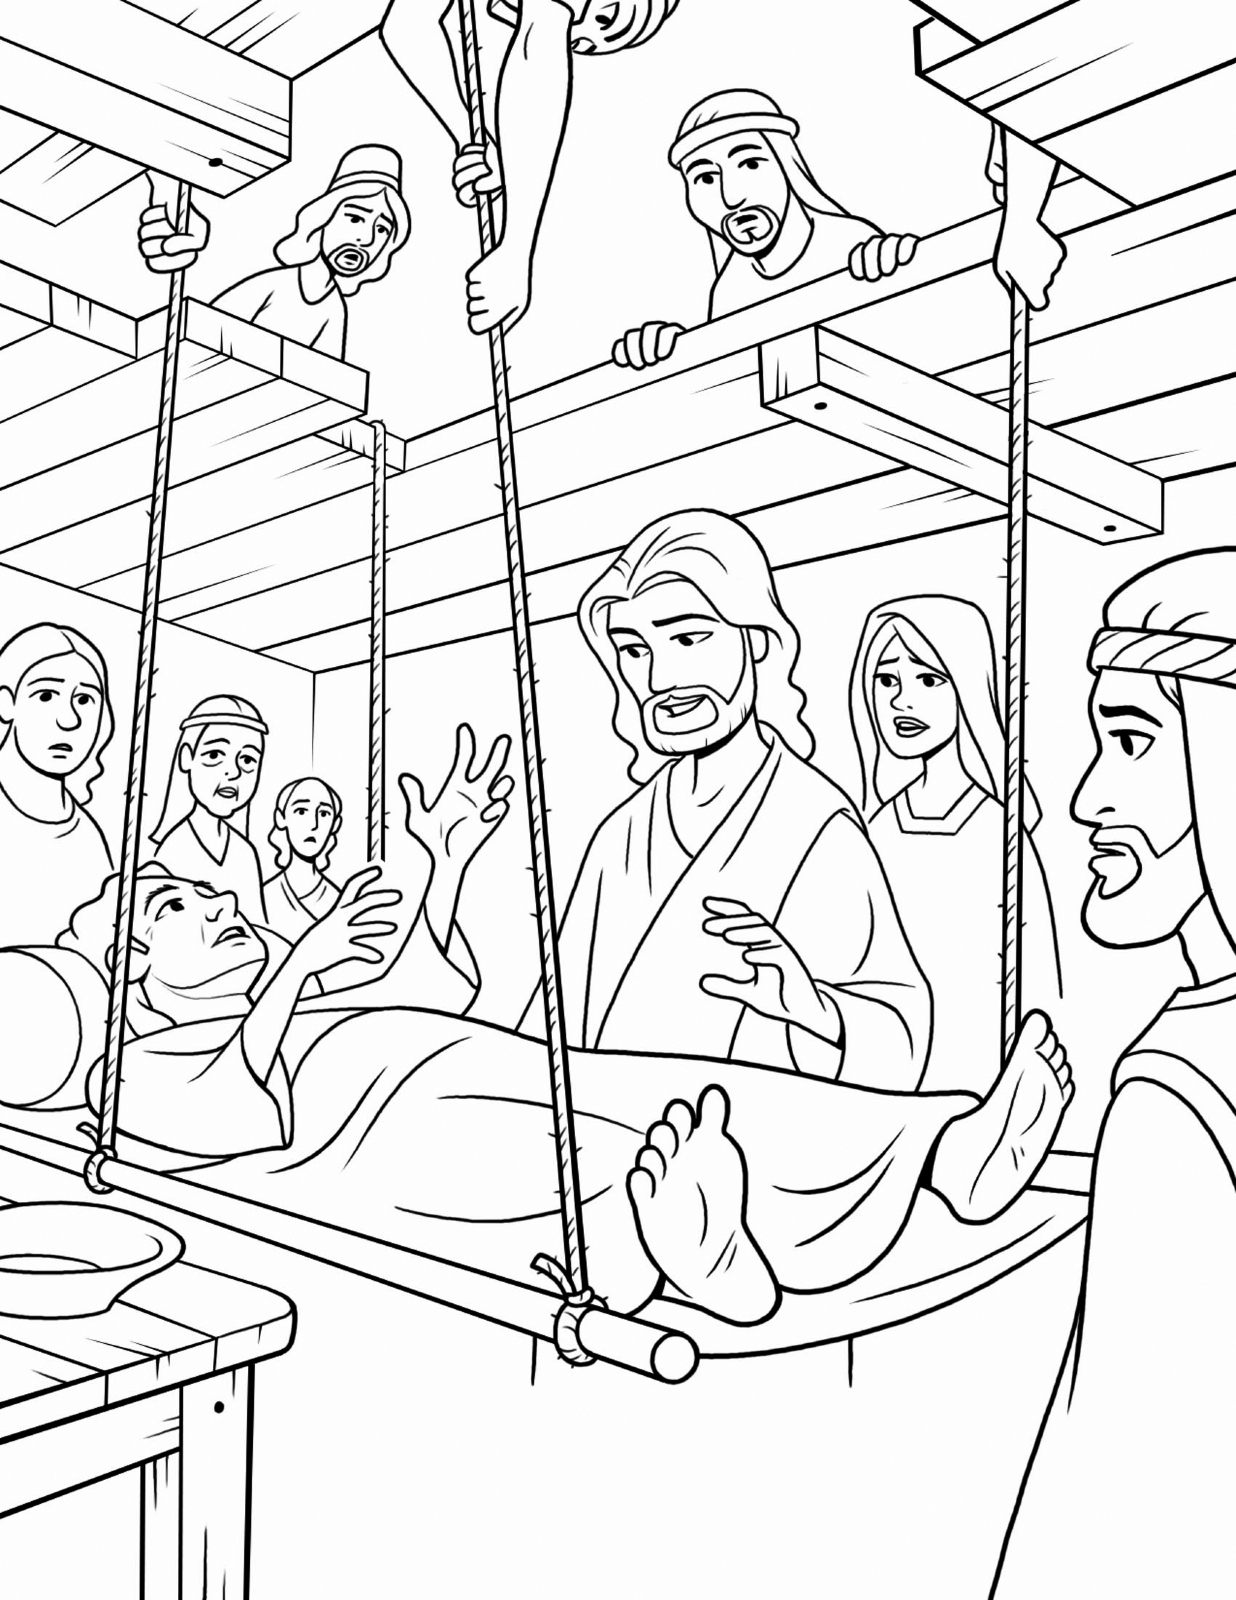 hezekiahs prayer for healing coloring pages | Healing Miracle Prayer Coloring Page Coloring Pages